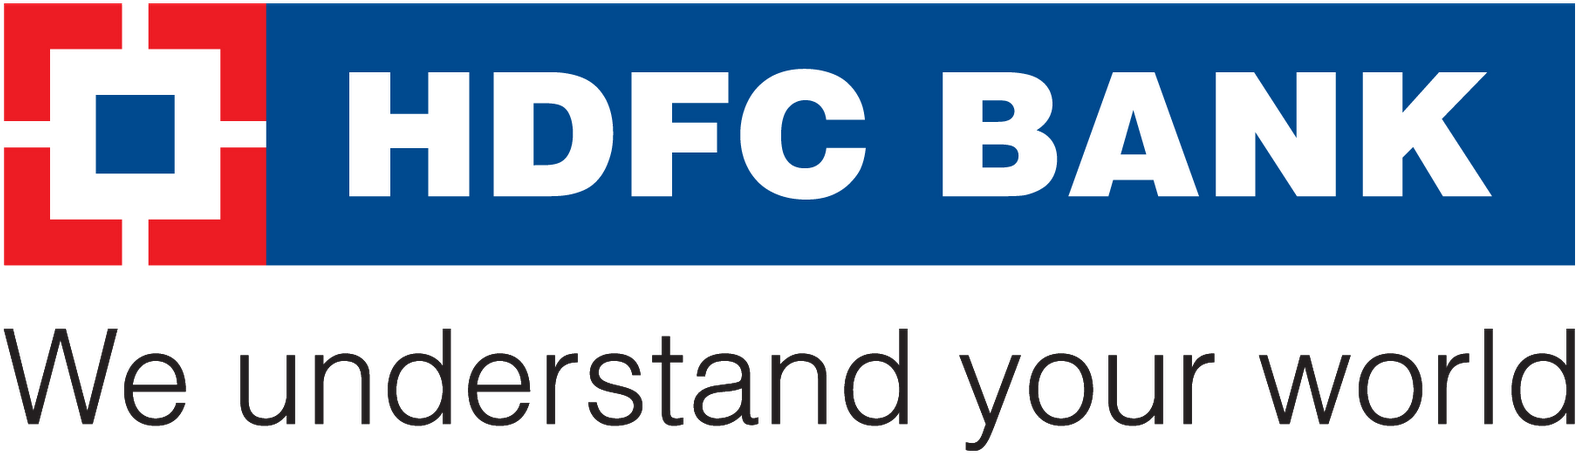 Download Credit Card- Powered By - Hdfc Bank Logo Png - Full Size